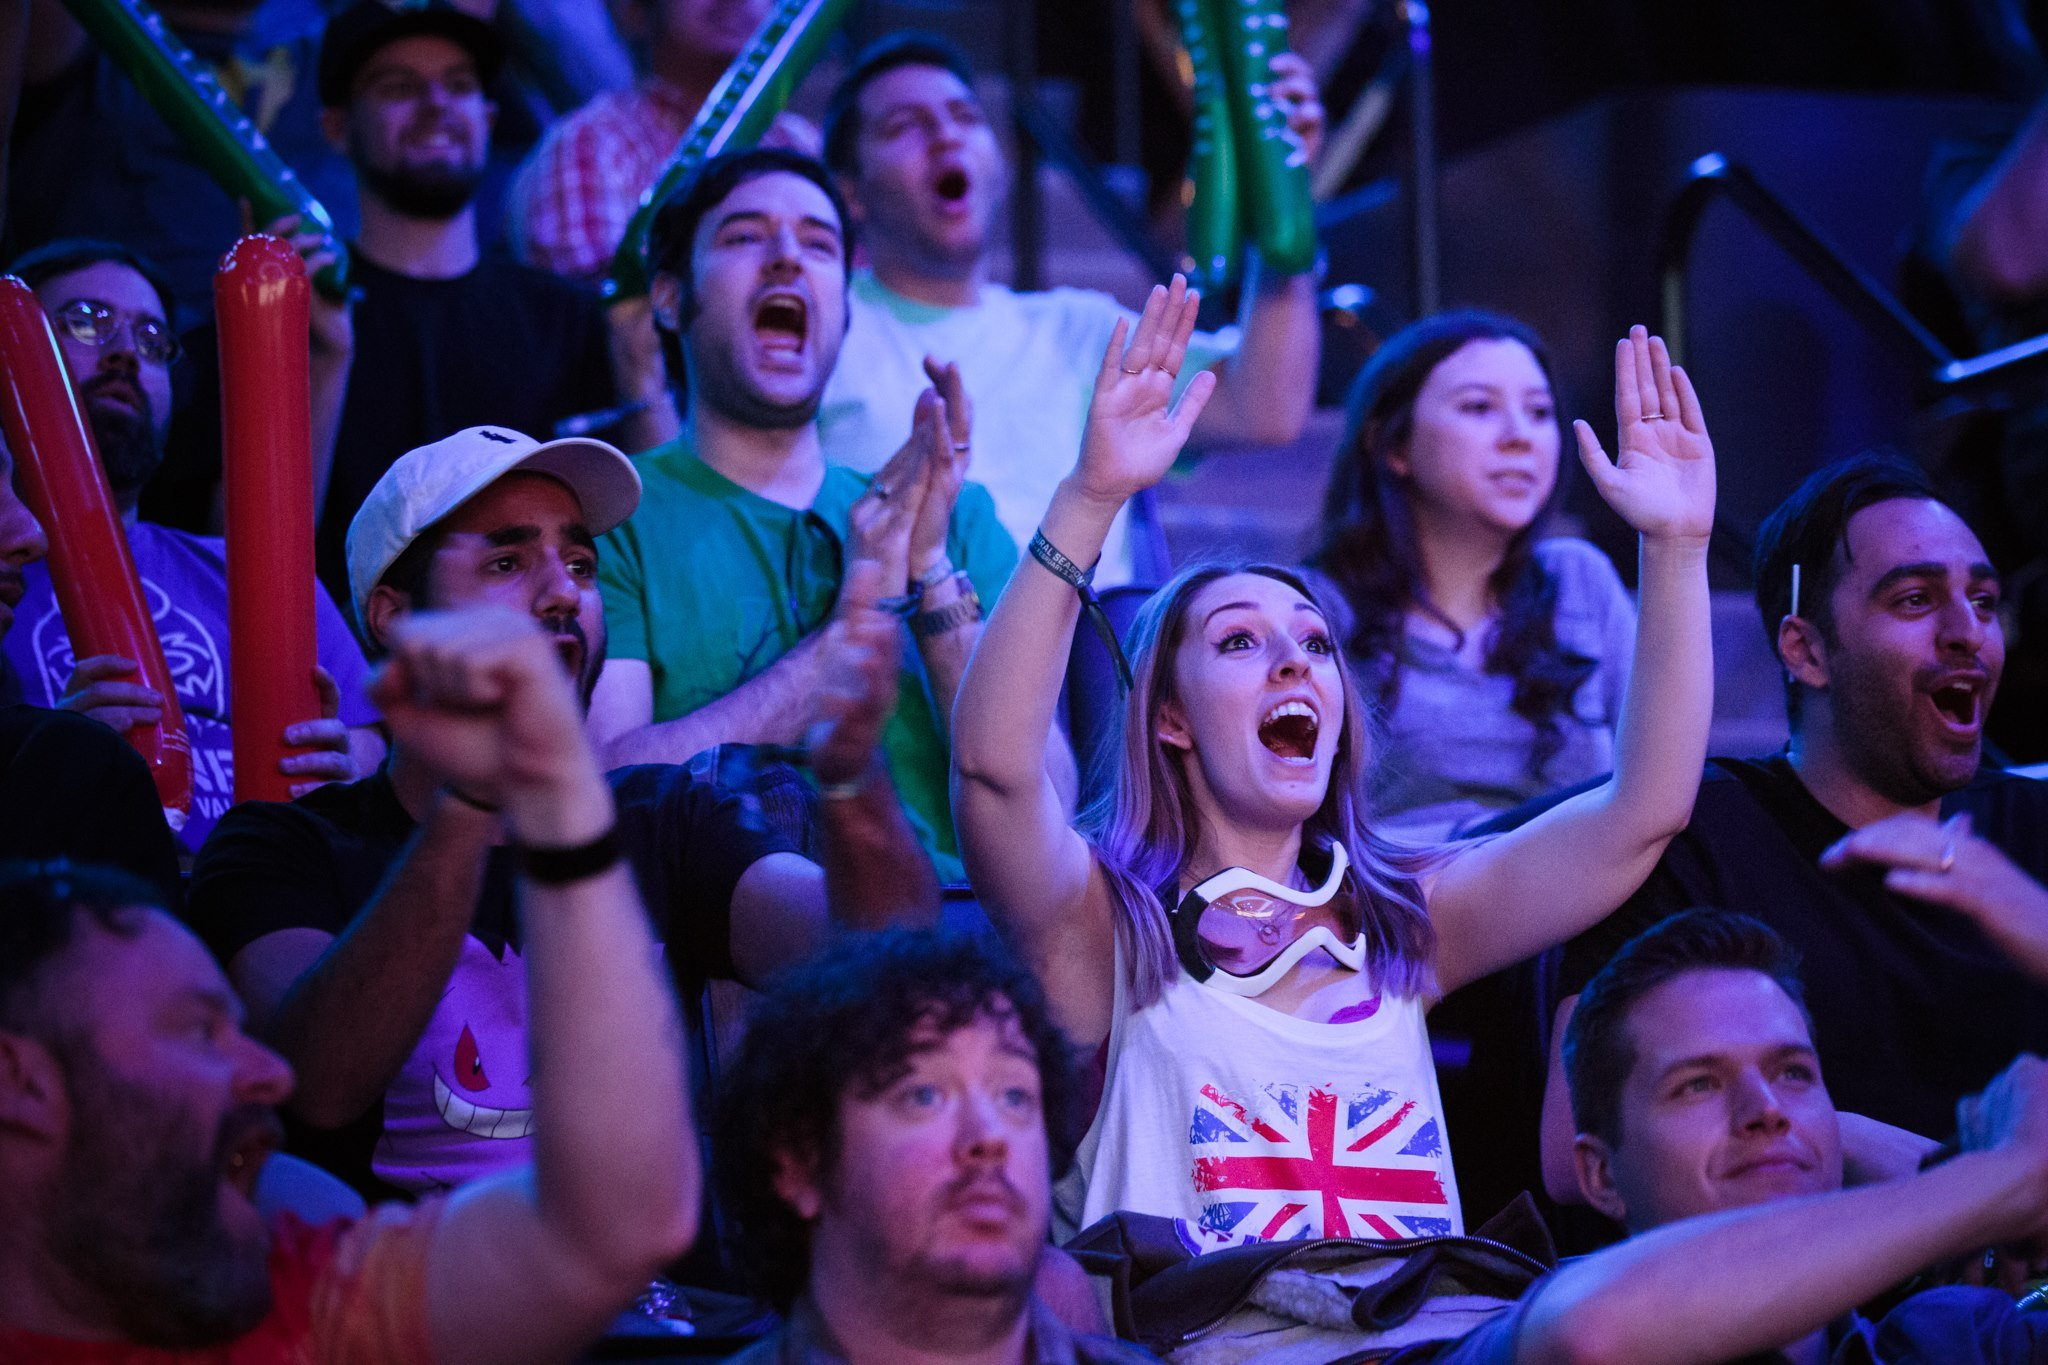 We've already seen that fans of the Overwatch League are willing to group up to catch the action